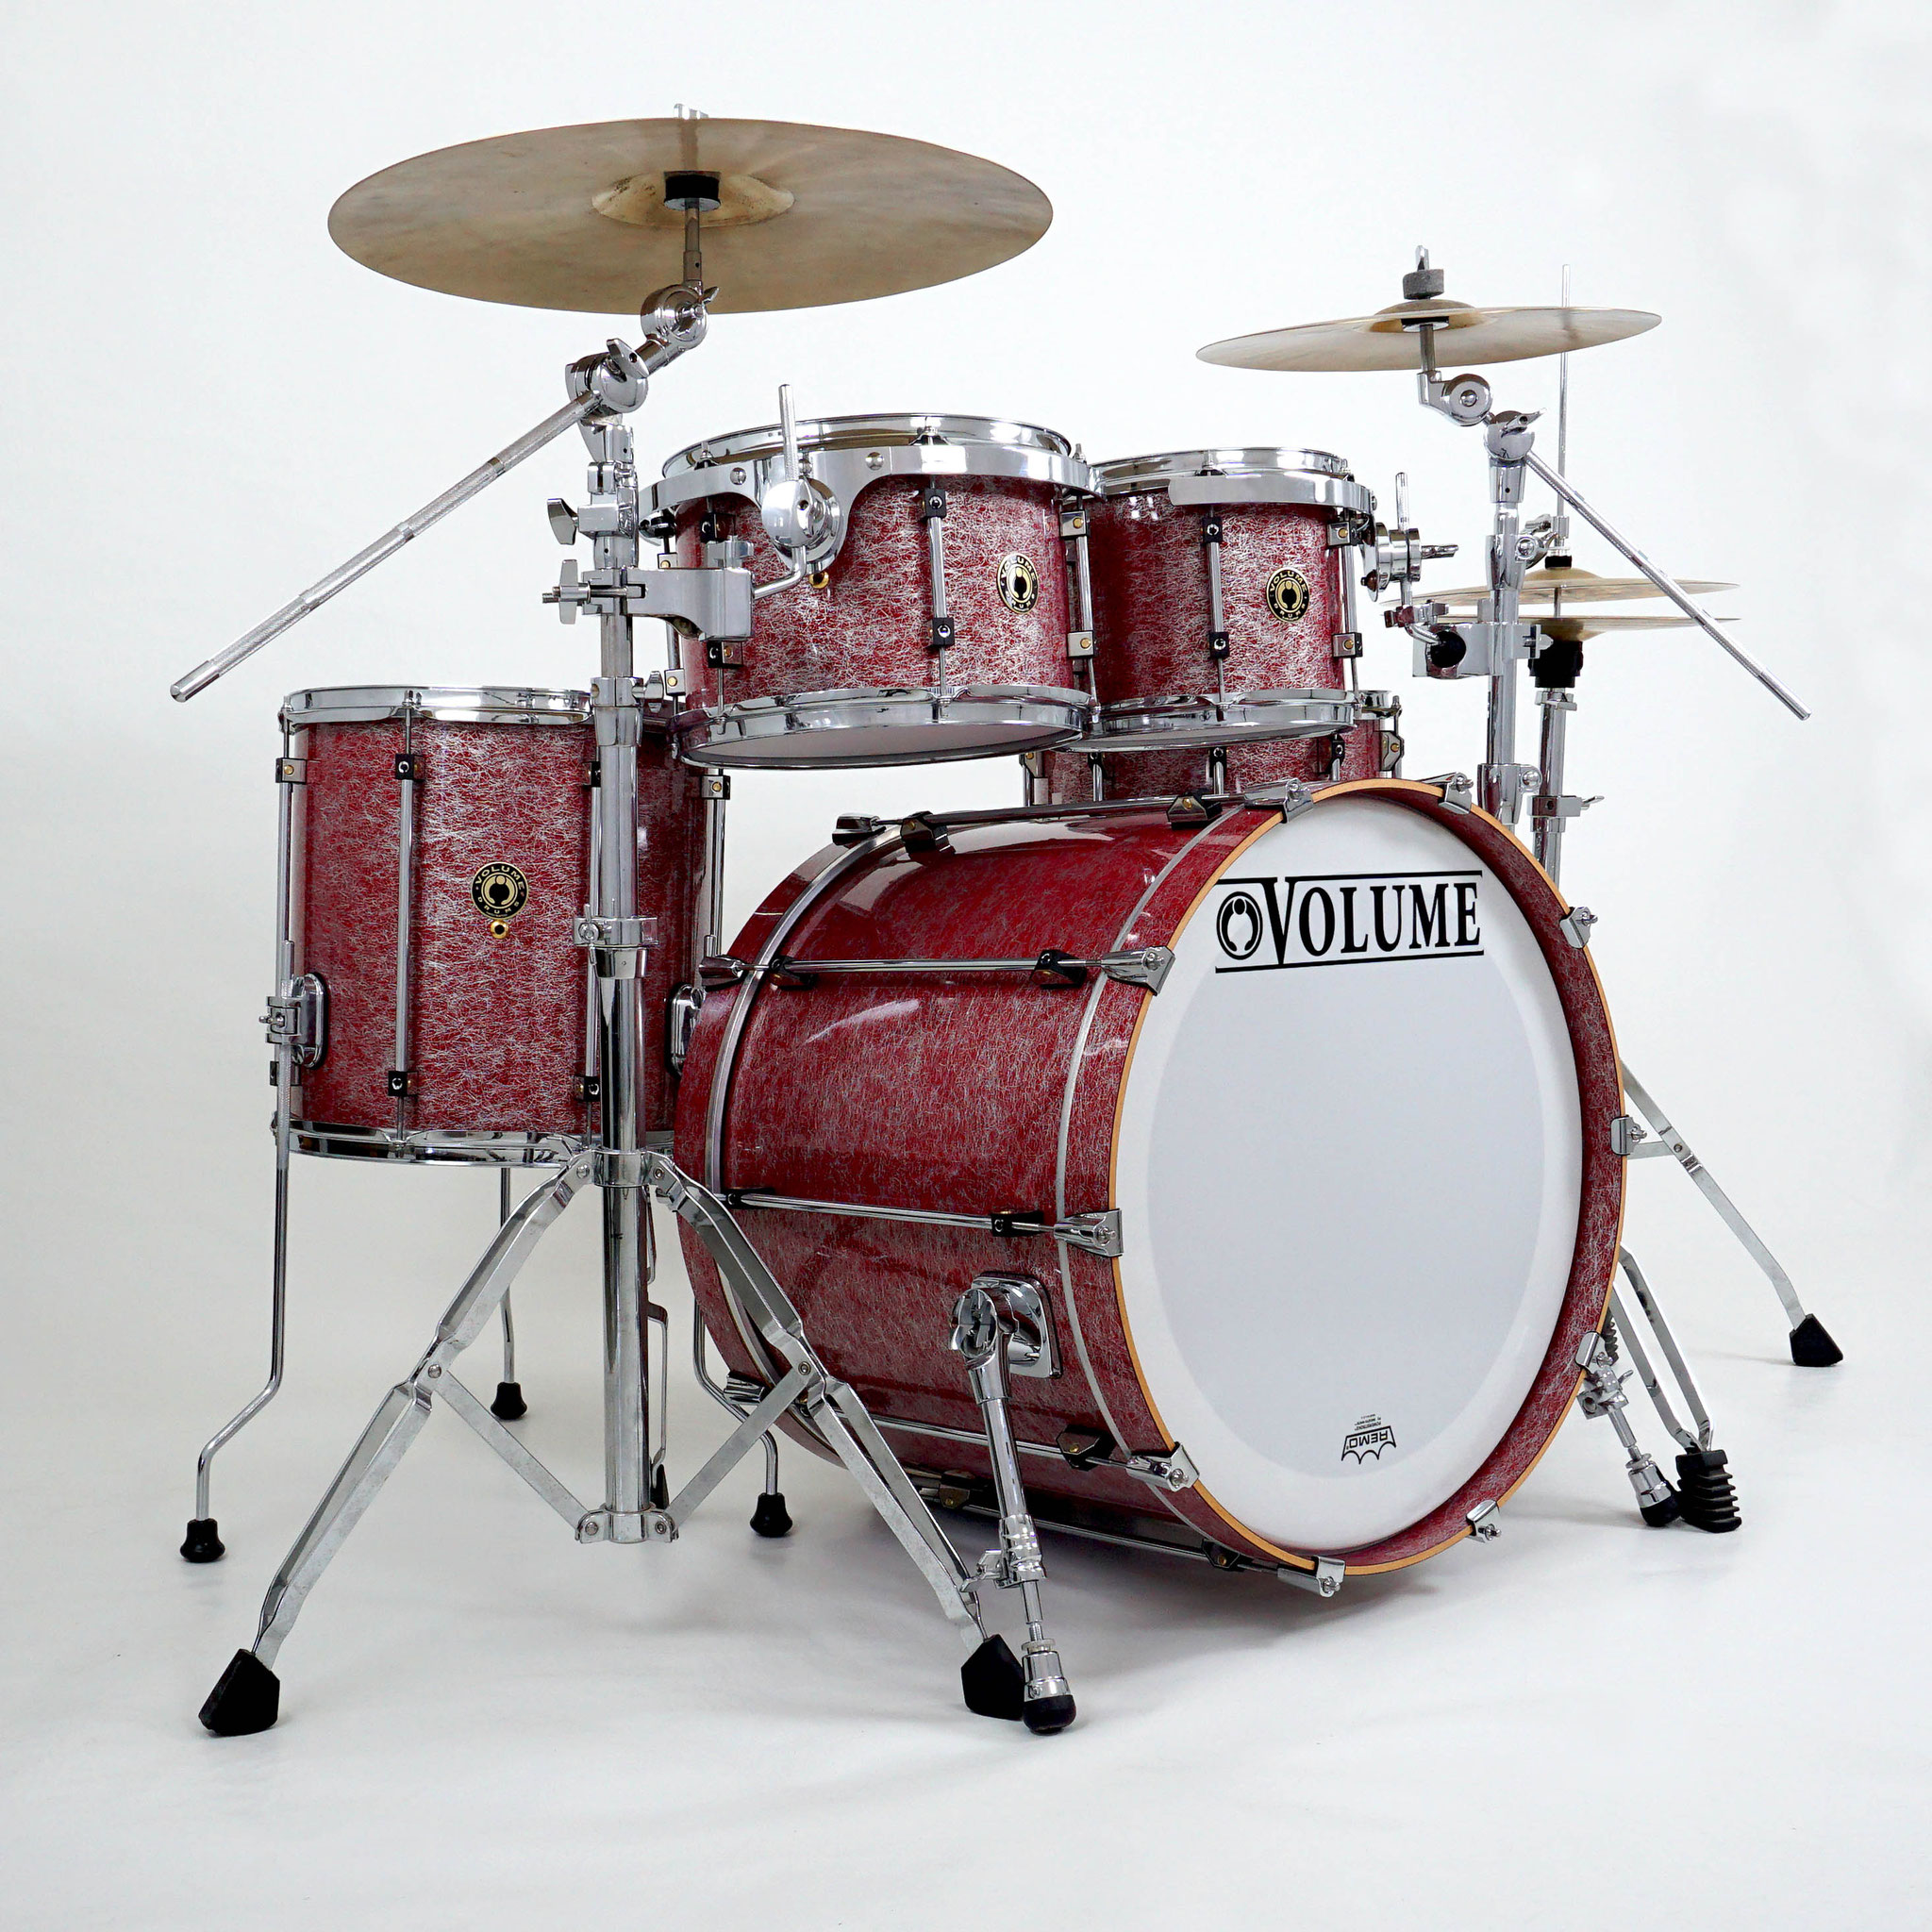 Wood: - VOLUMEDRUMS